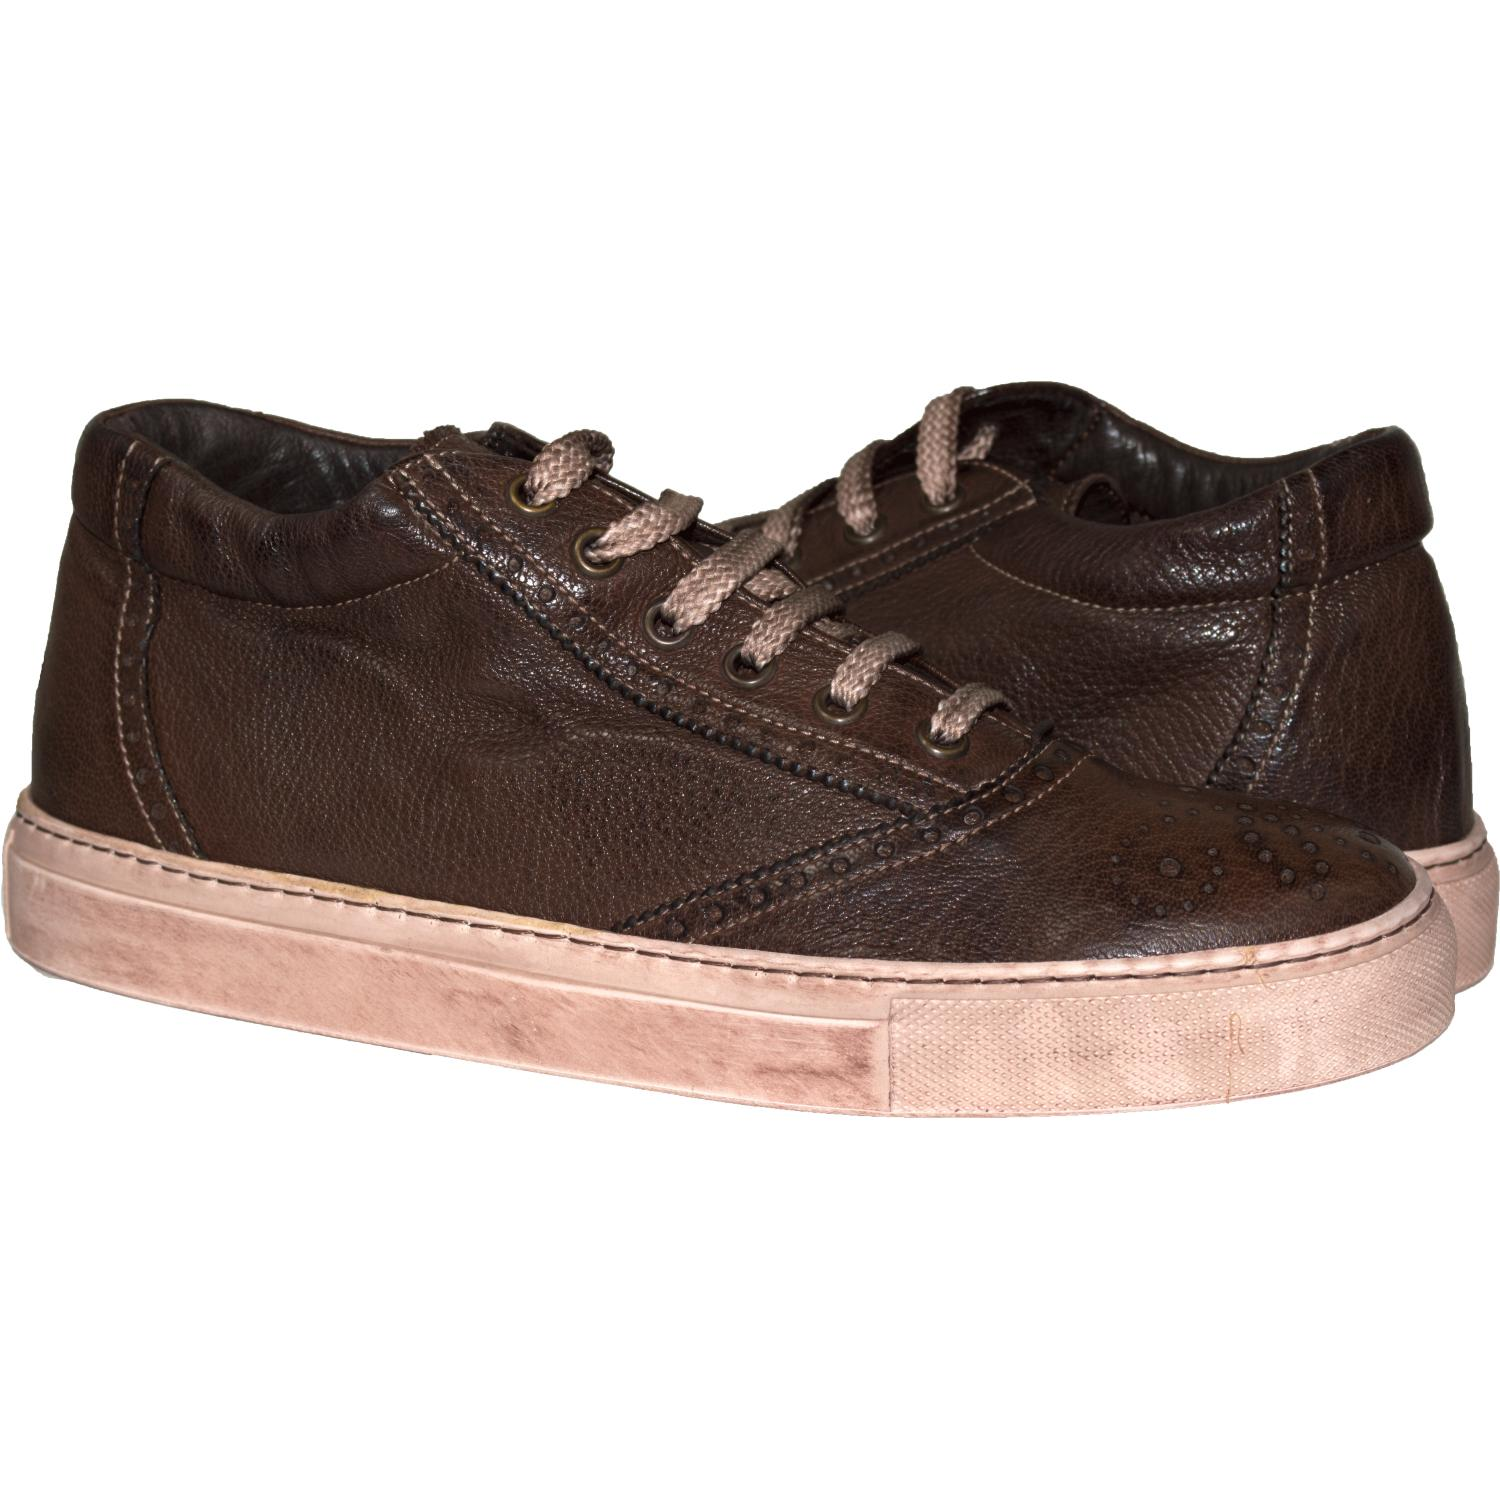 8bc871853bec3e Victoria Dip Dyed Dark Brown Low Top Sneakers